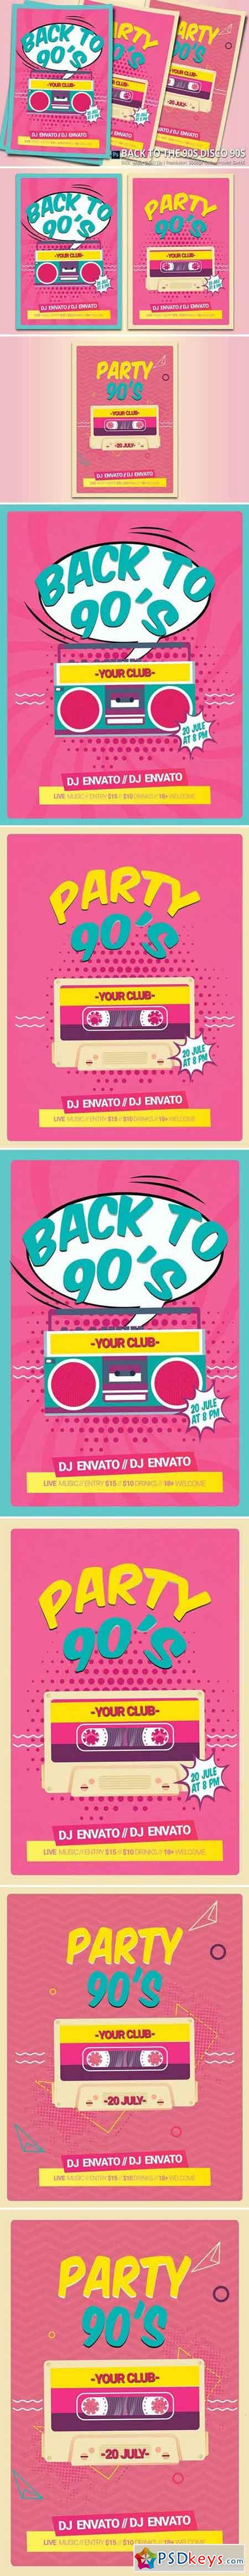 Back To The 90s Disco 90s Poster 2430506